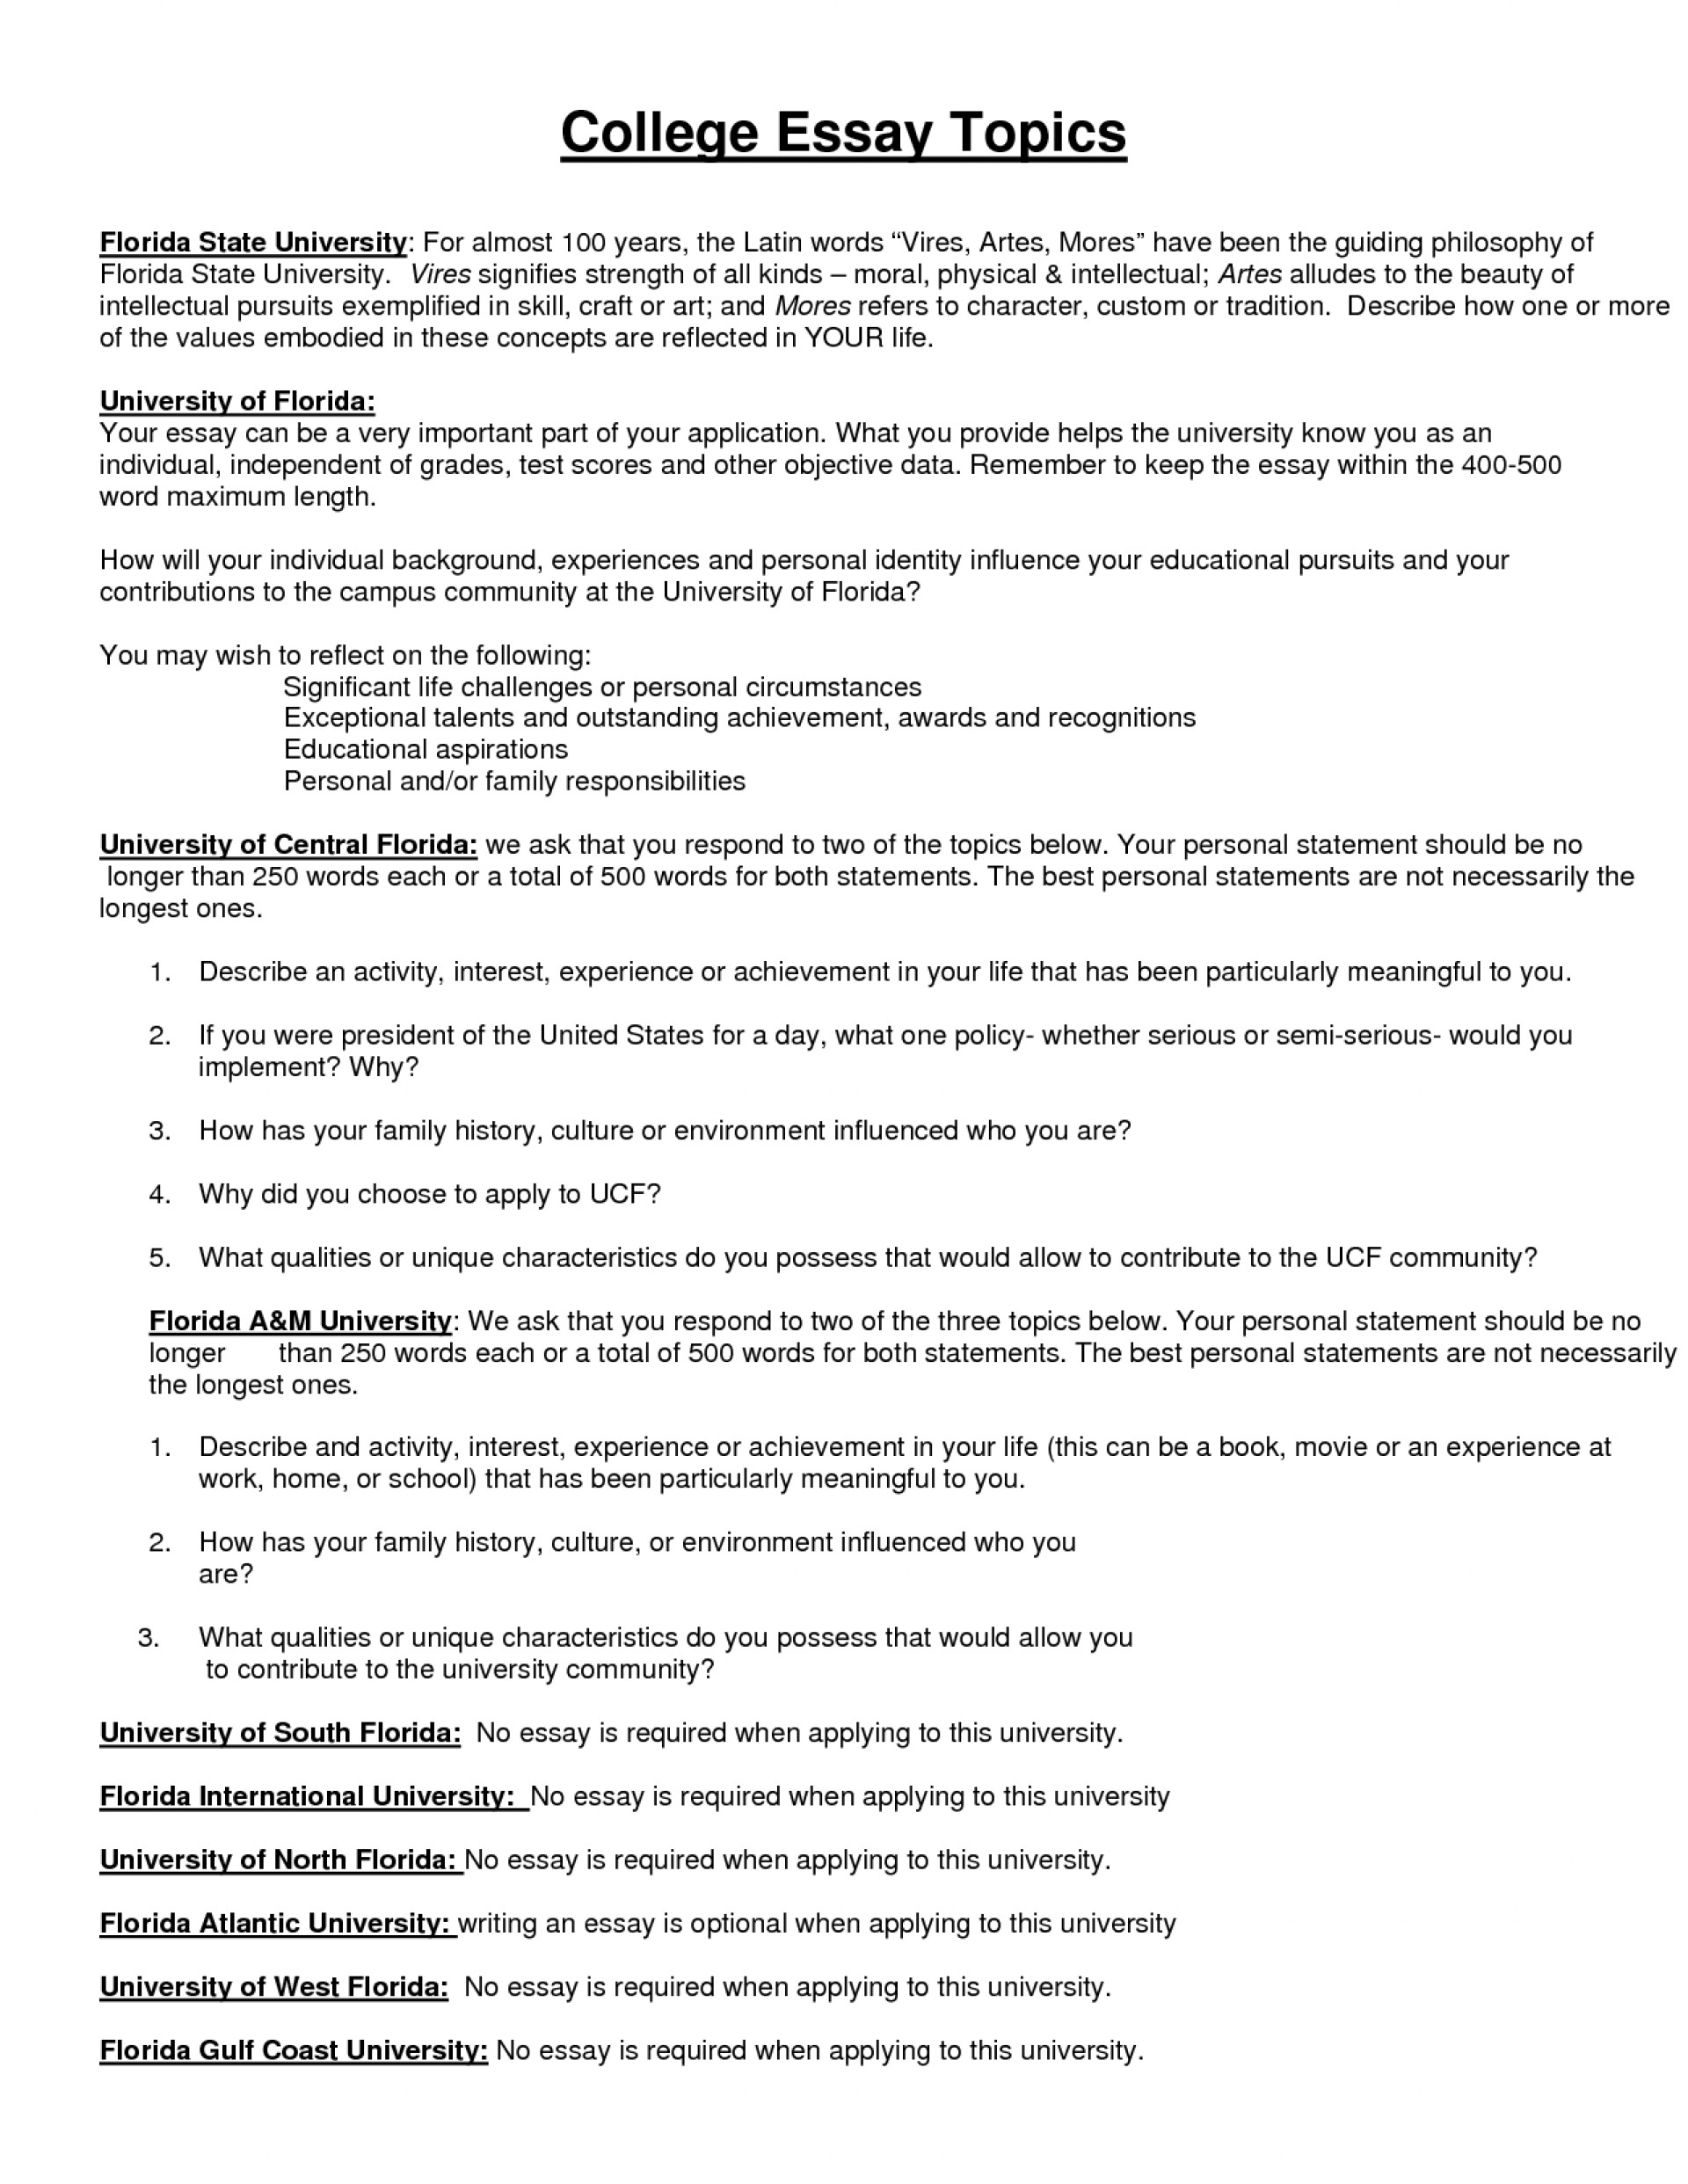 012 College Prompt Essays 4khqbt5dlt Unique Essay Examples 1 Application Prompts 1920